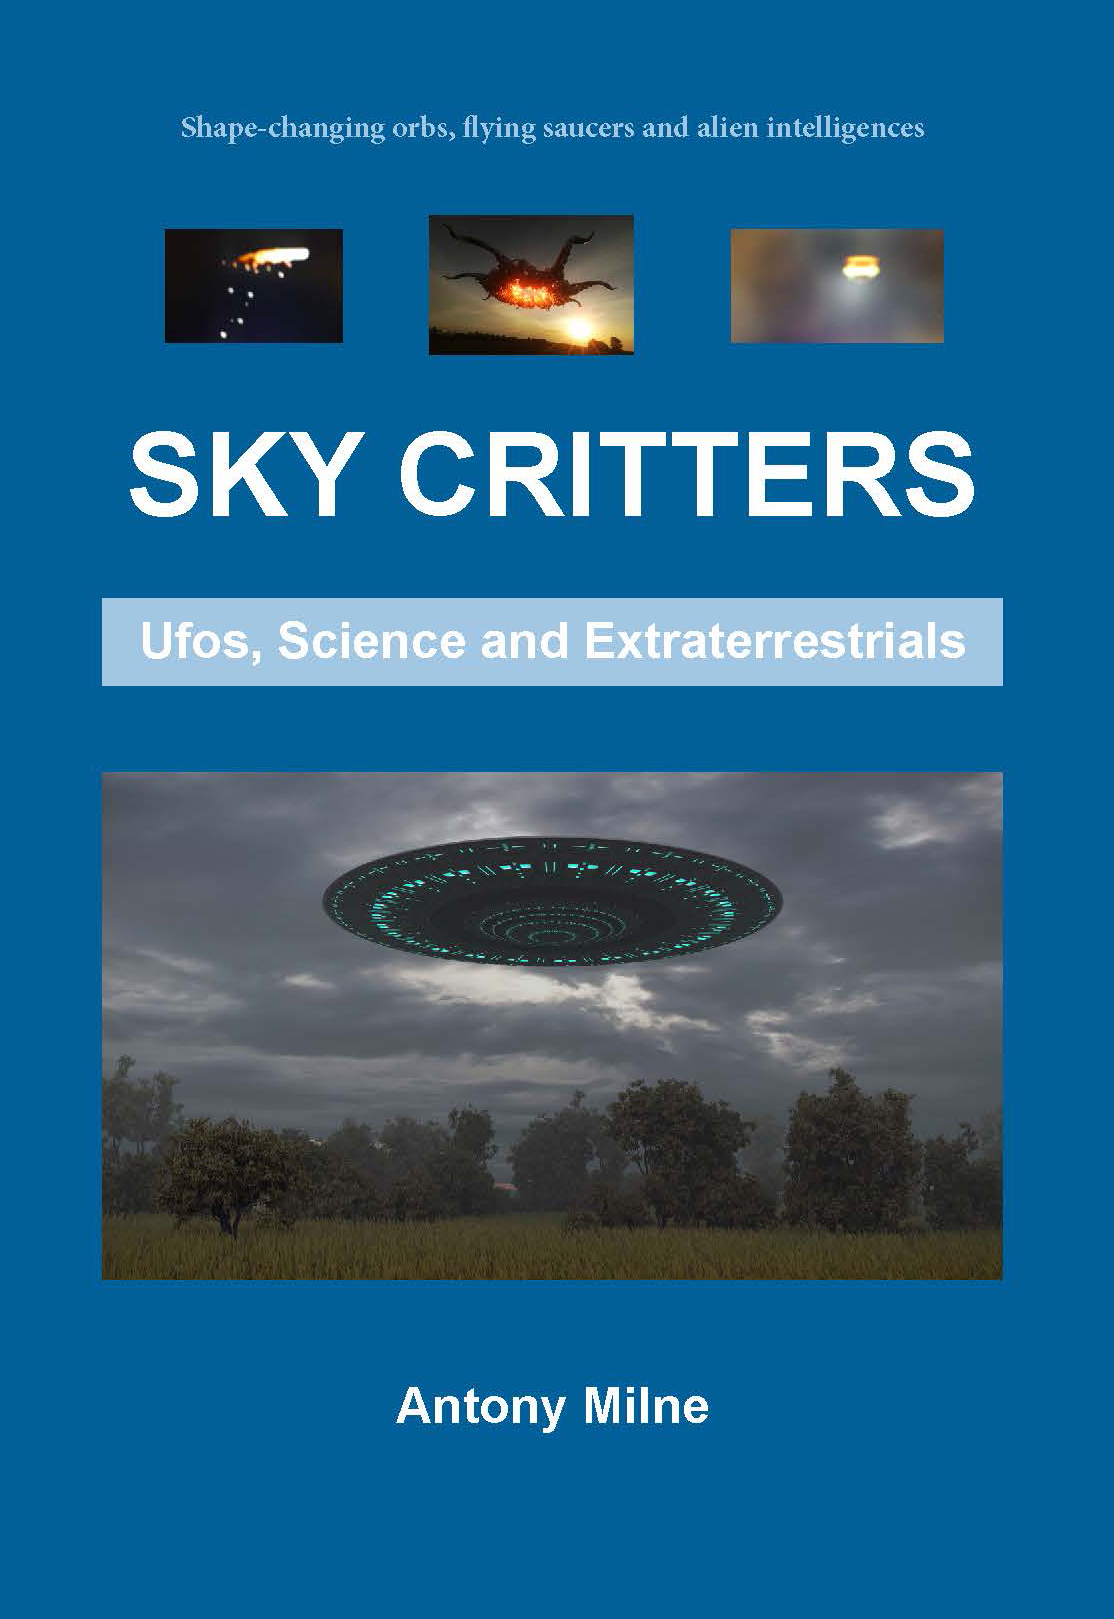 Sky Critters Ufos, Science and Extraterrestrials